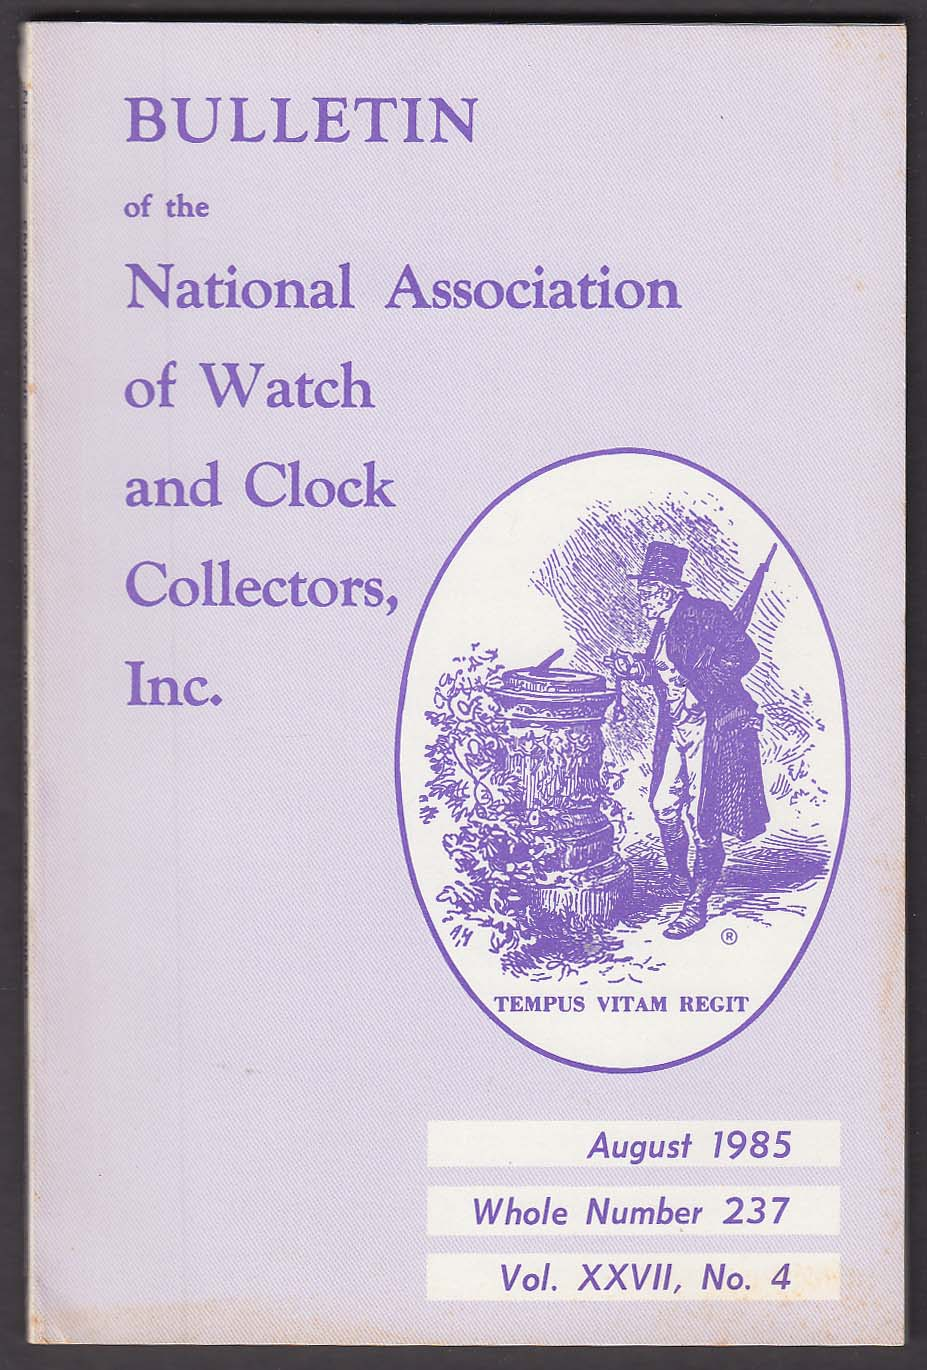 NAWCC Bulletin #237 English Watches Clock Repair Quebec Longcase ++ 8 1985